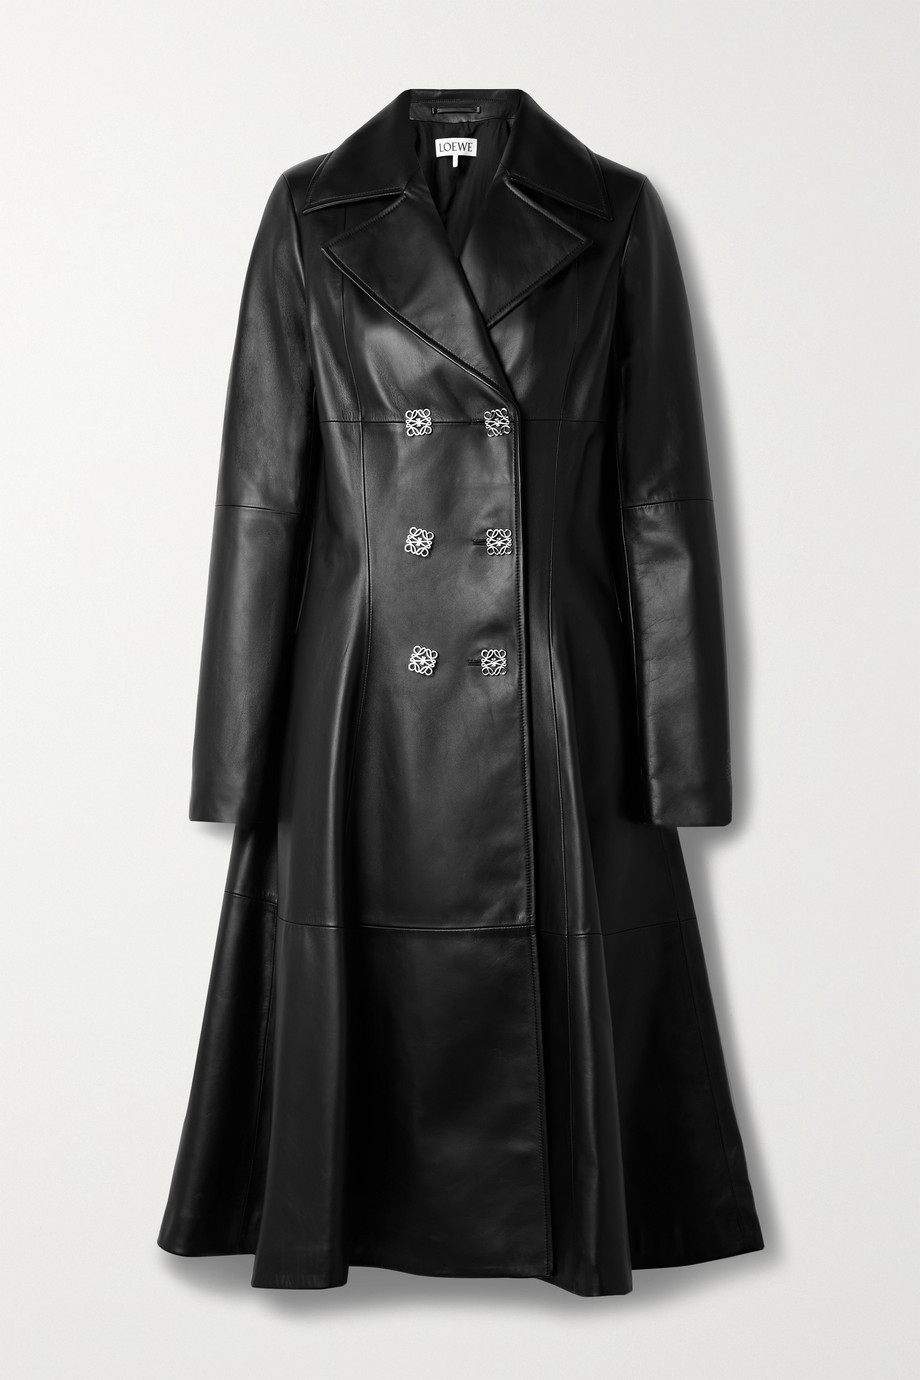 Loewe Double-breasted leather coat